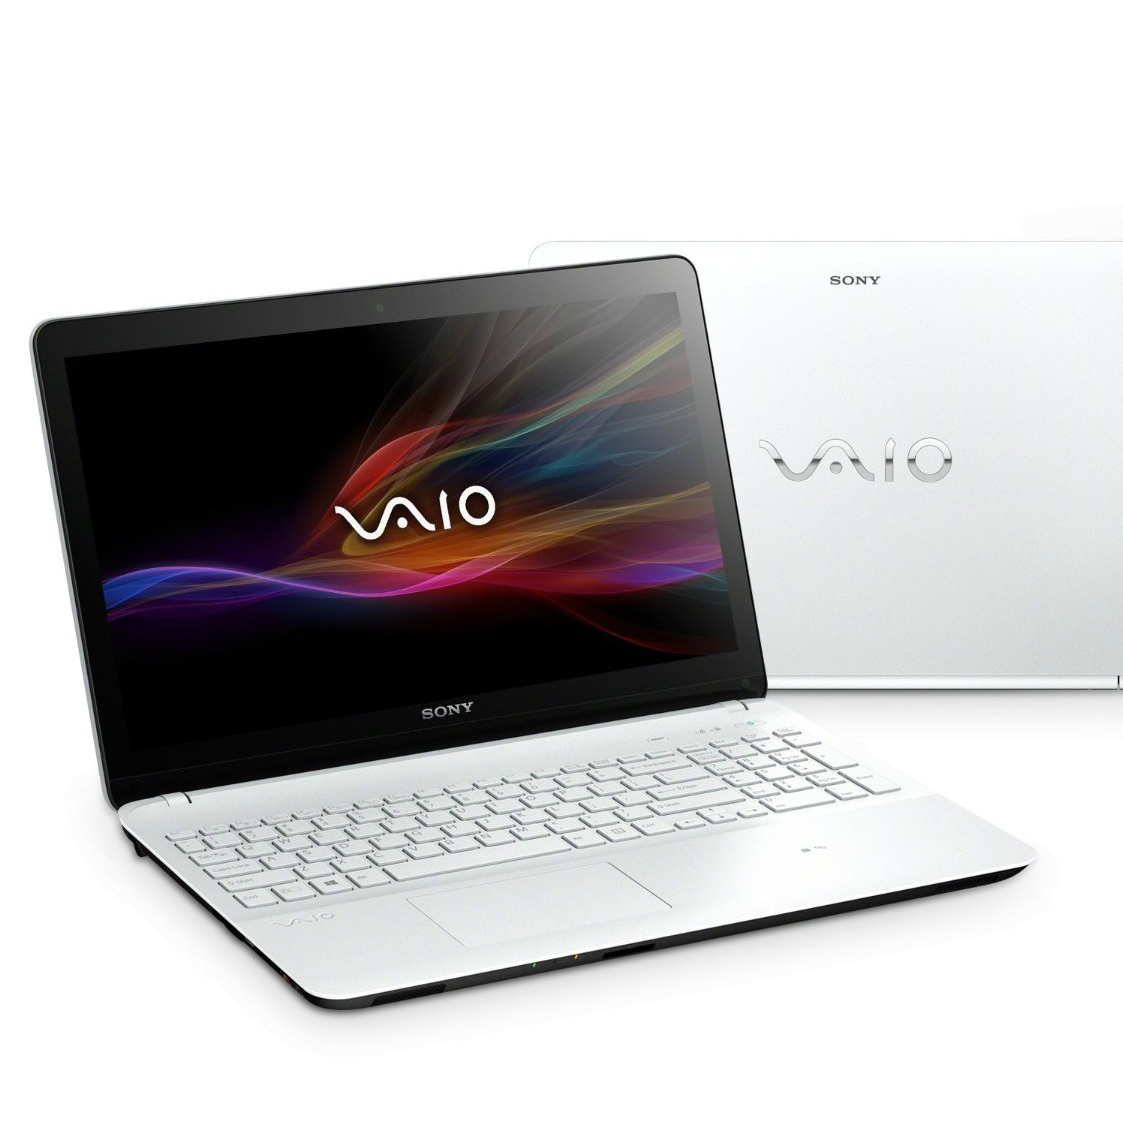 sony vaio svf1521e2ew fr5 blanc tactile pc sony pickture. Black Bedroom Furniture Sets. Home Design Ideas